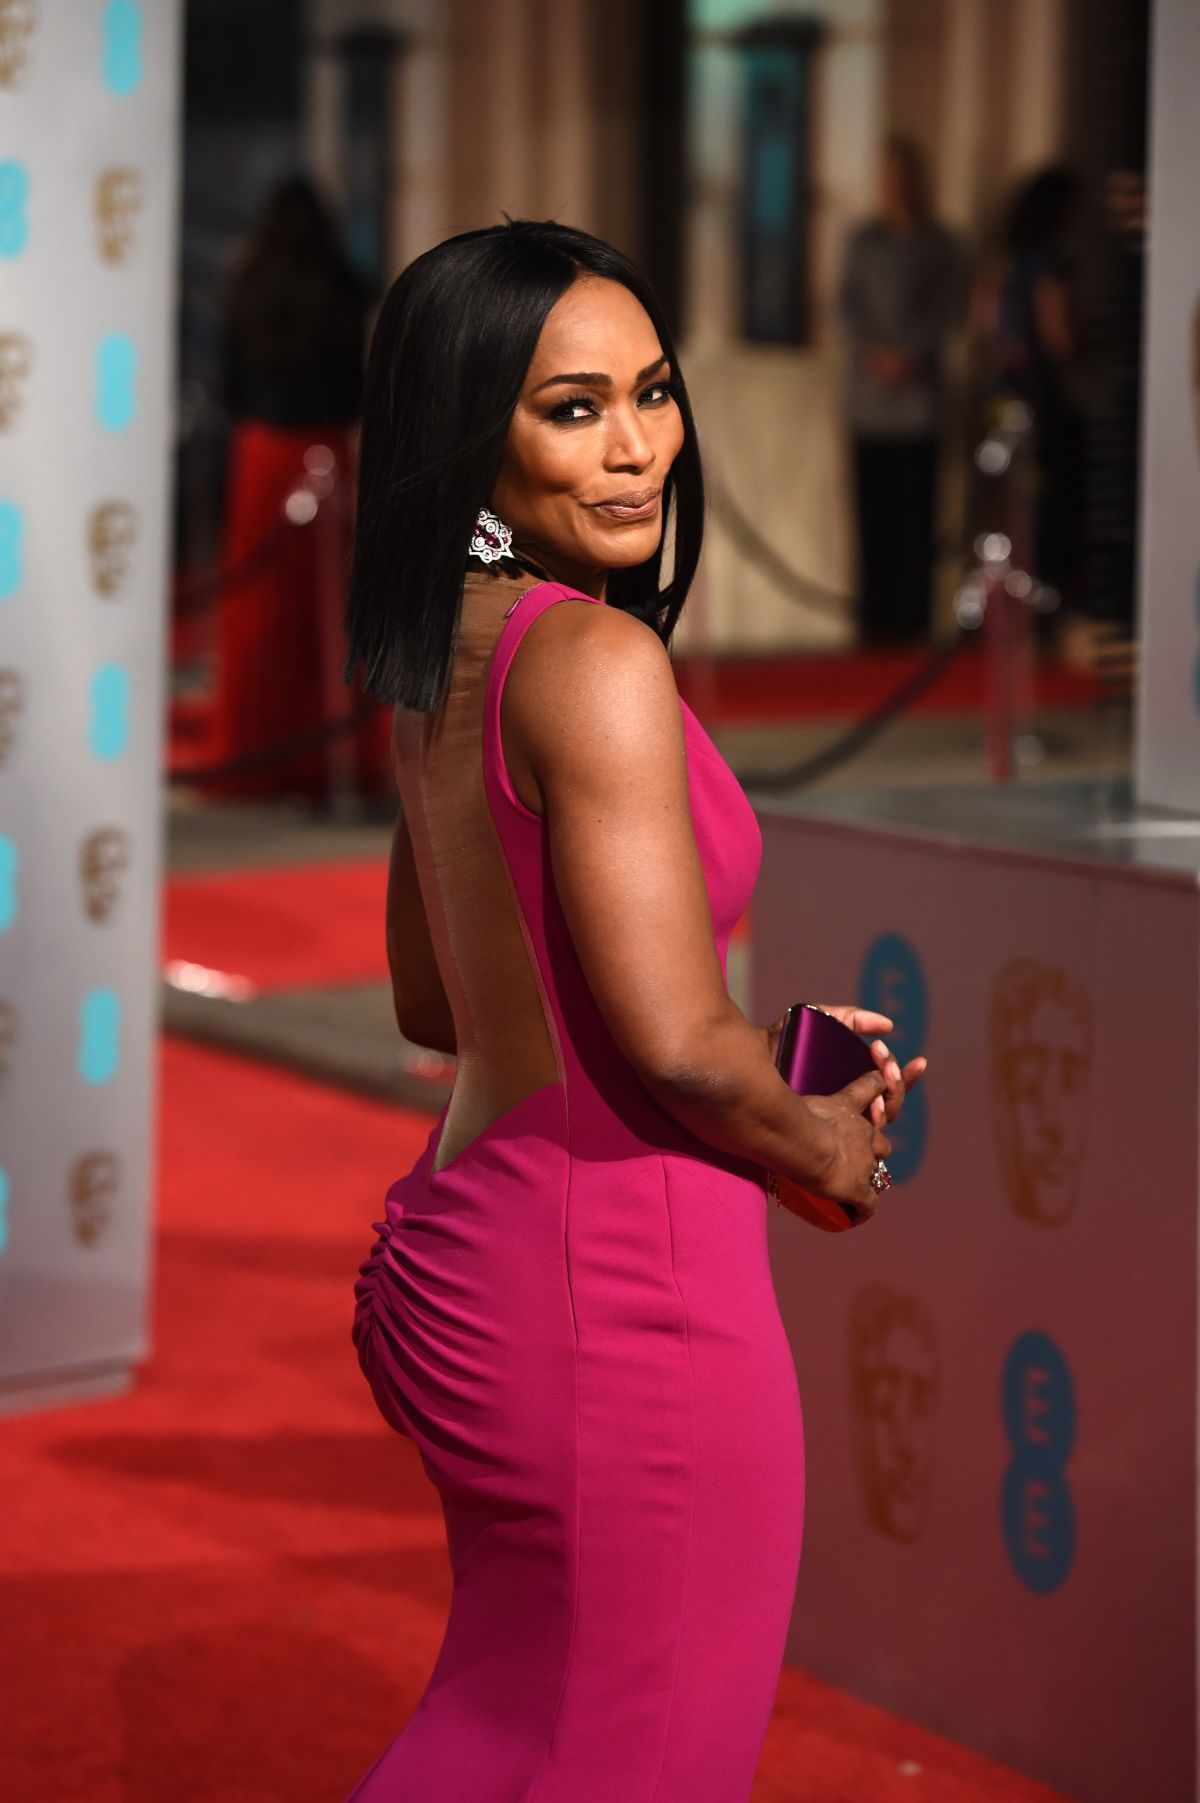 ANGELA BASSETT at British Academy of Film and Television Arts Awards 2016 in London 02/14/2016